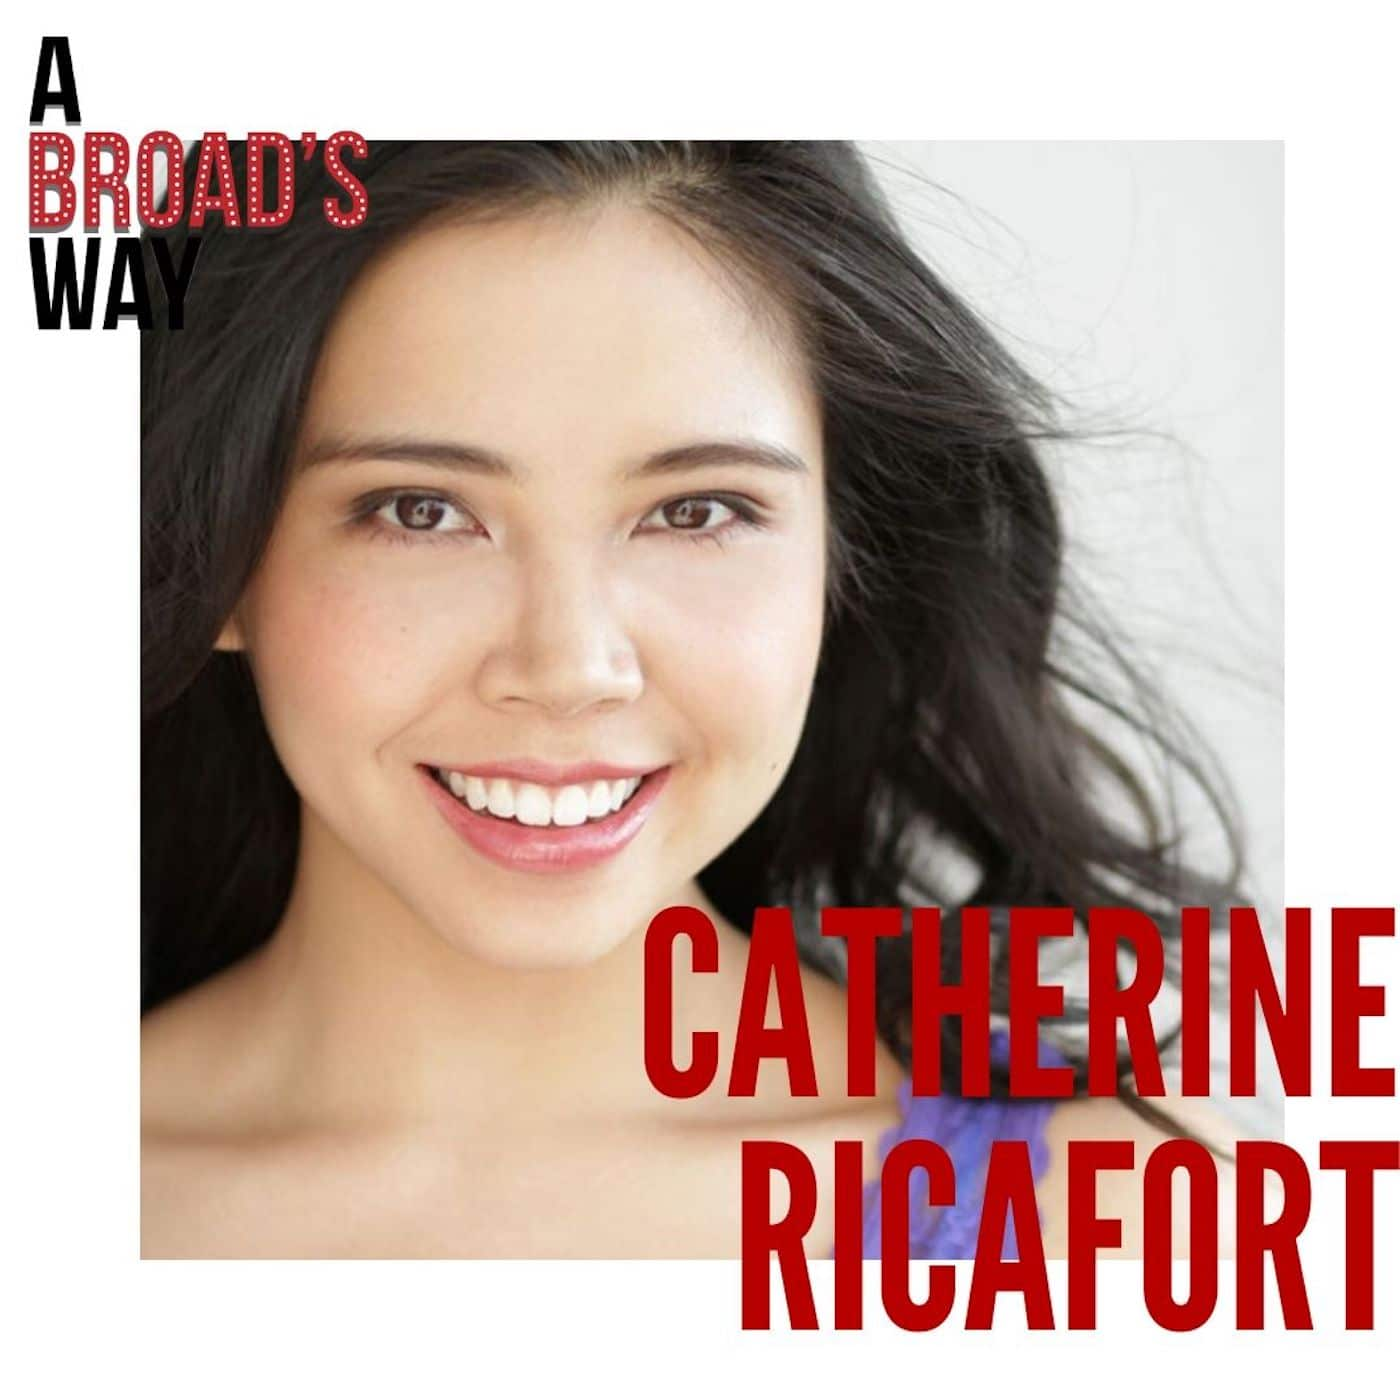 A Broad's Way Episode 16 Catherine Ricafort